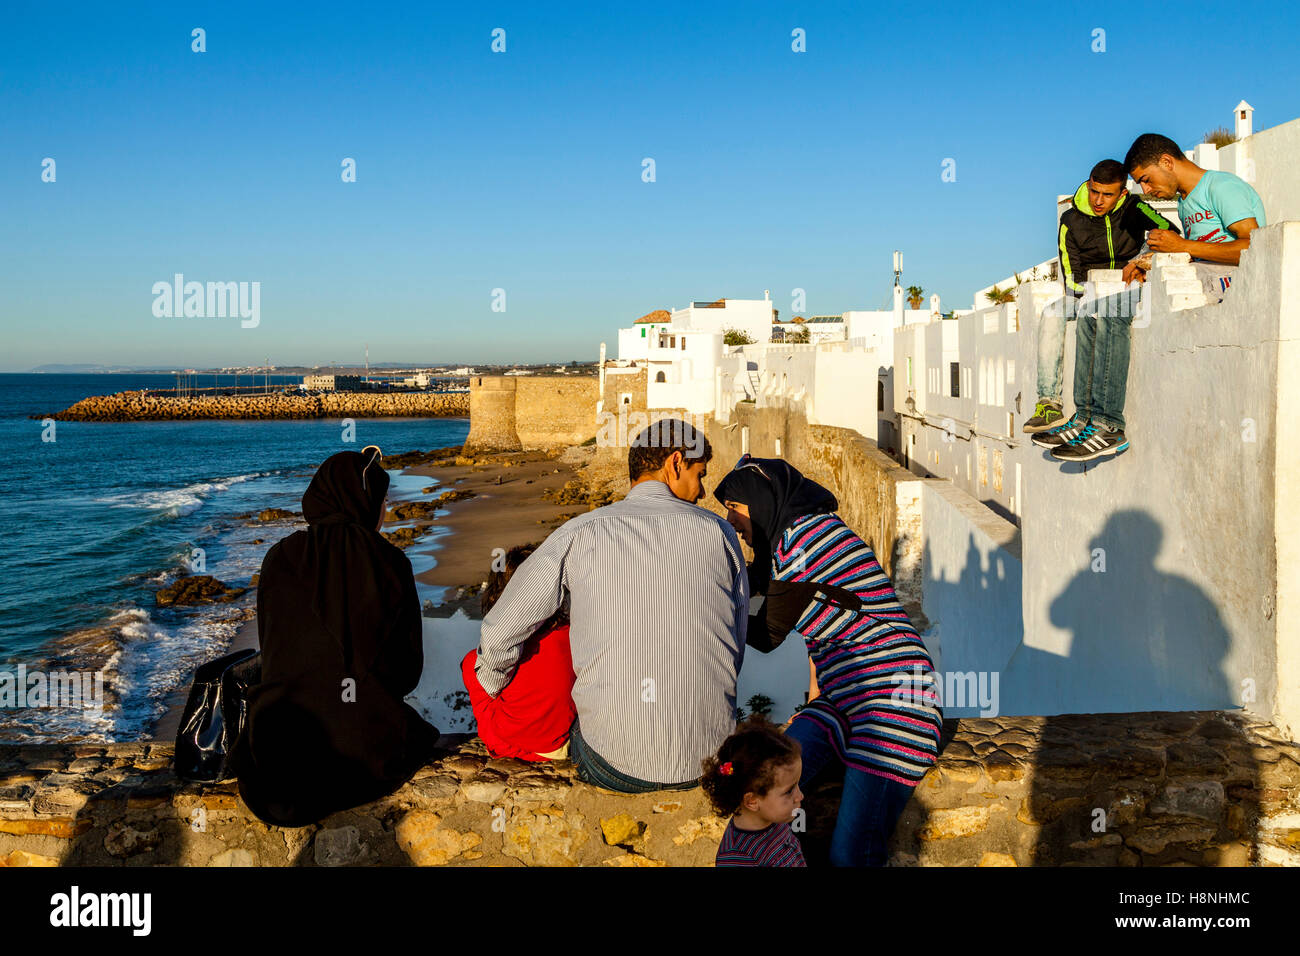 Moroccan People Look Out Over The Walled Medina Of Asilah At Sunset, Asilah, Morocco - Stock Image